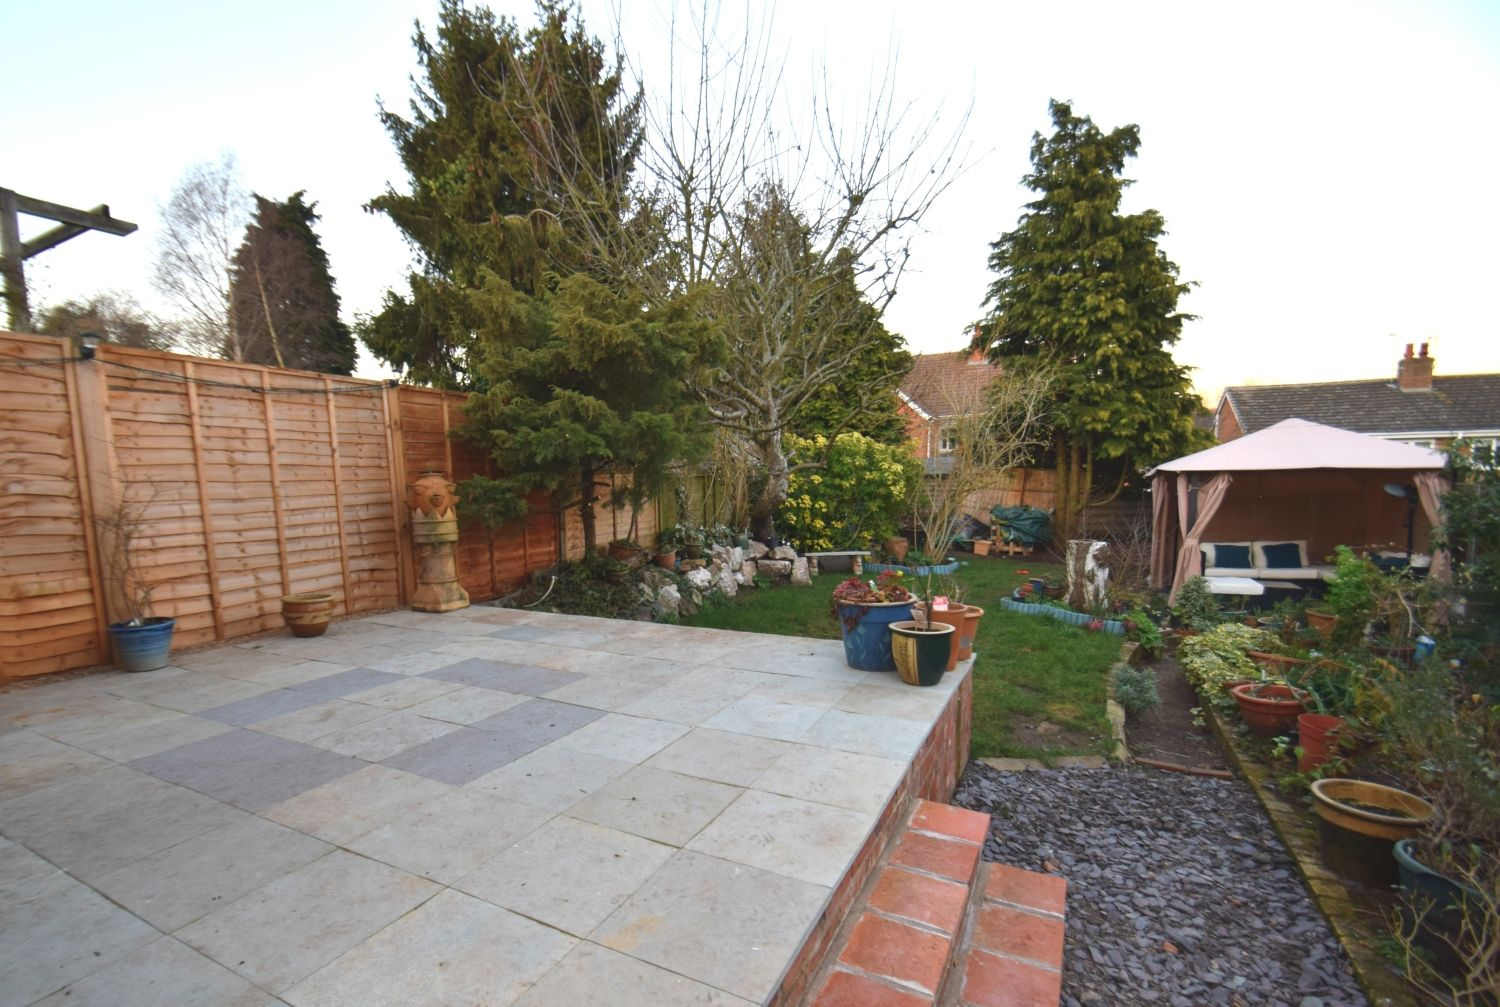 4 bed semi-detached for sale in Upland Grove, Bromsgrove, B61  - Property Image 28